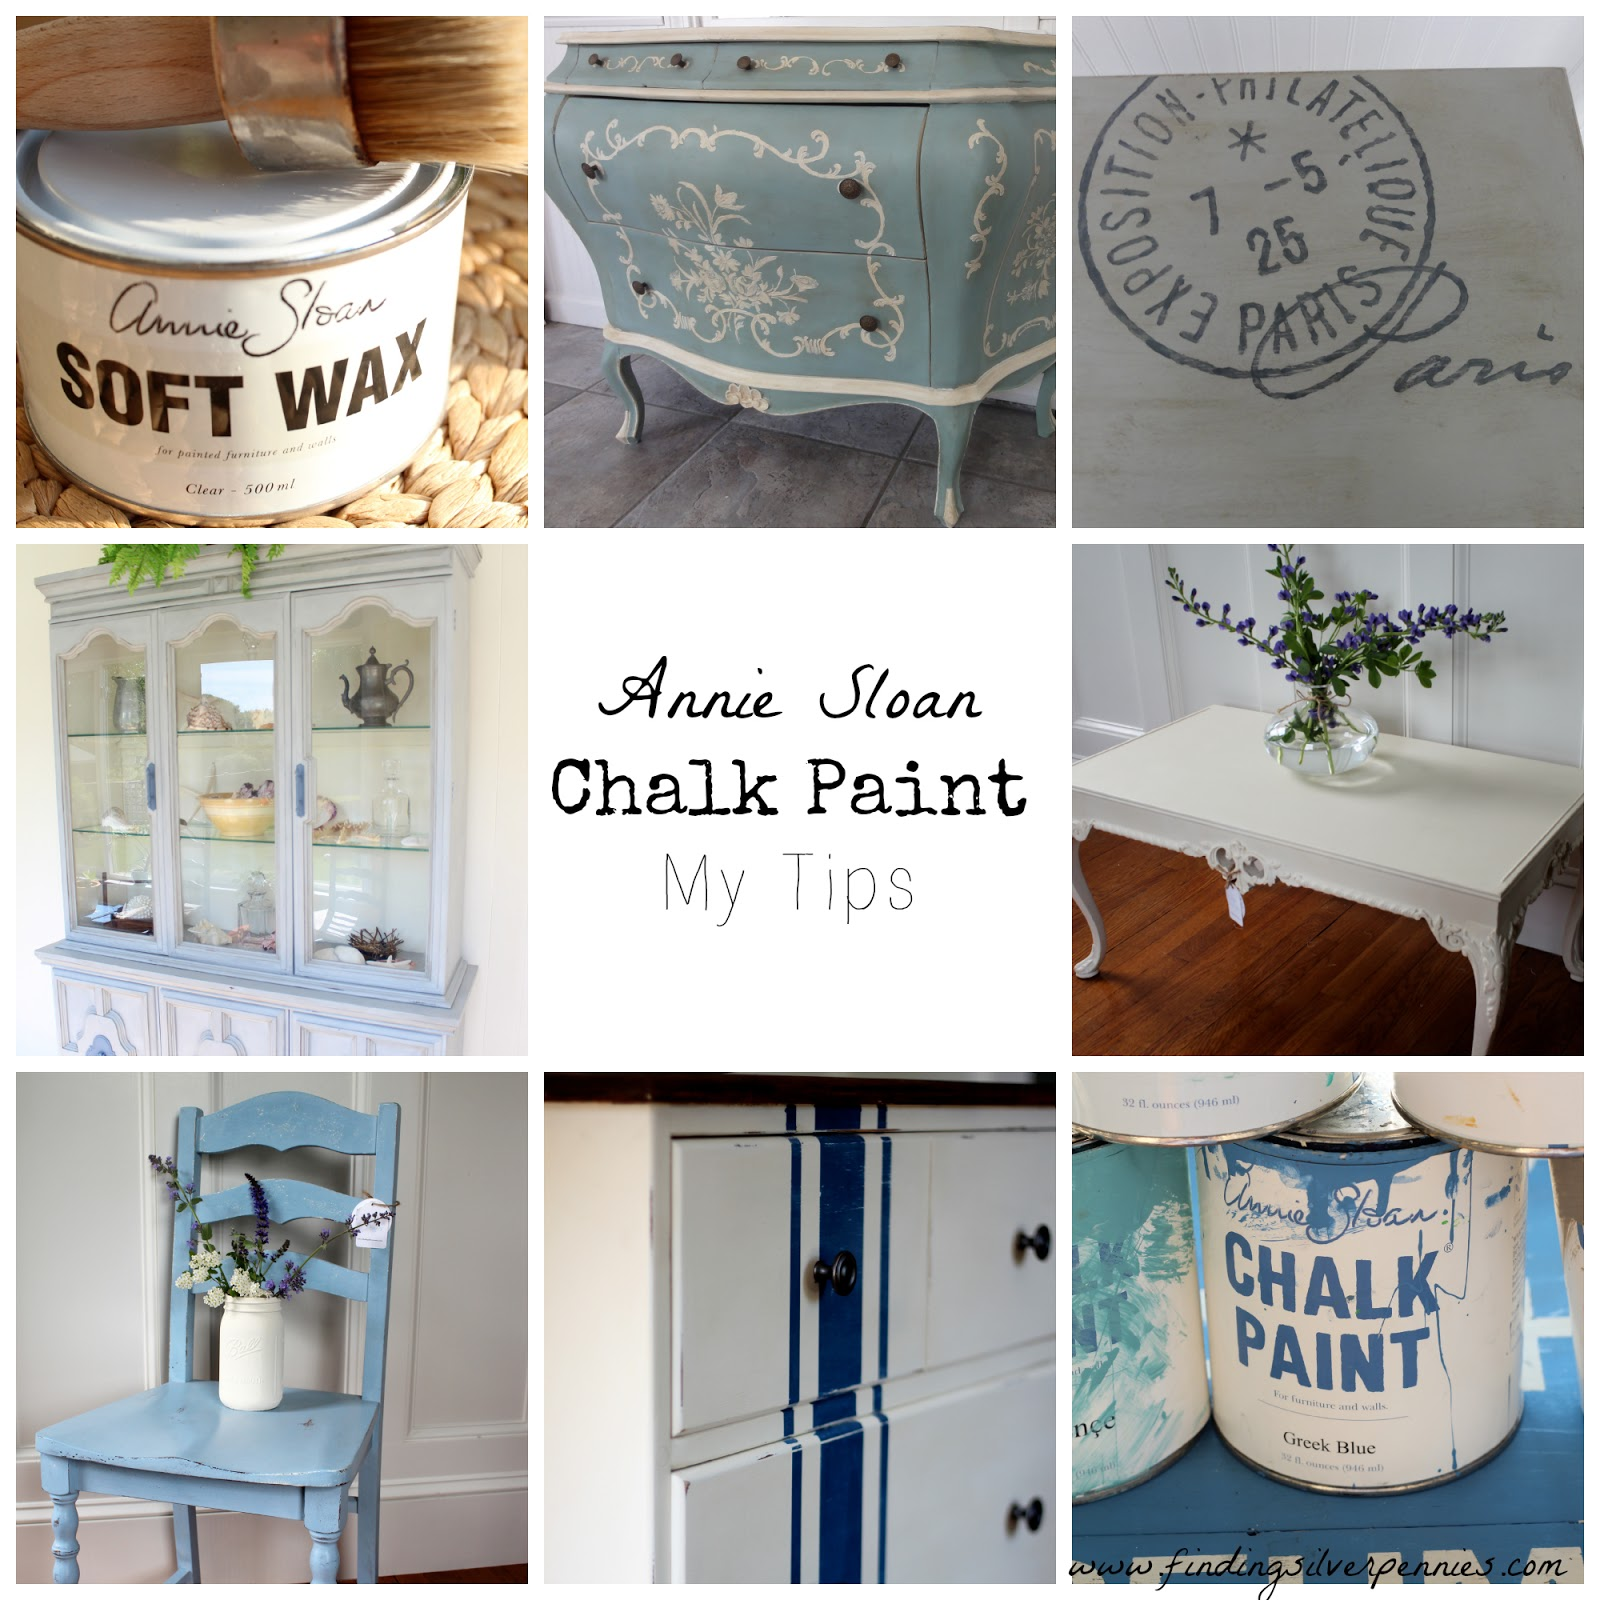 Annie Sloan Chalk Paint My Tips